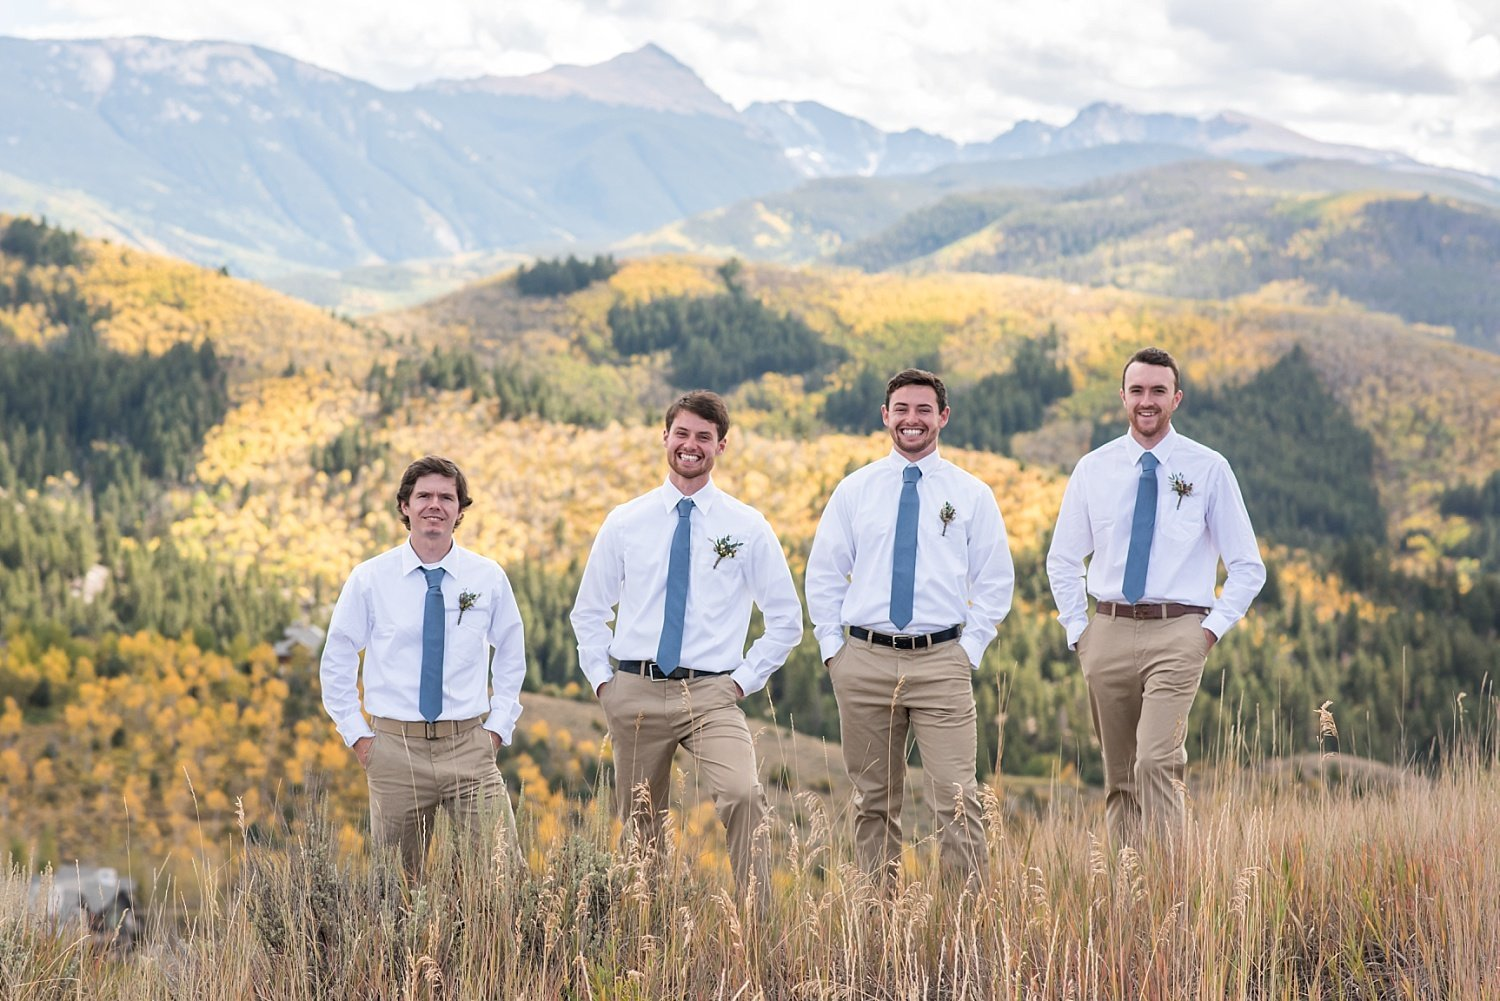 fall wedding in Colorado - groomsmen in the mountains